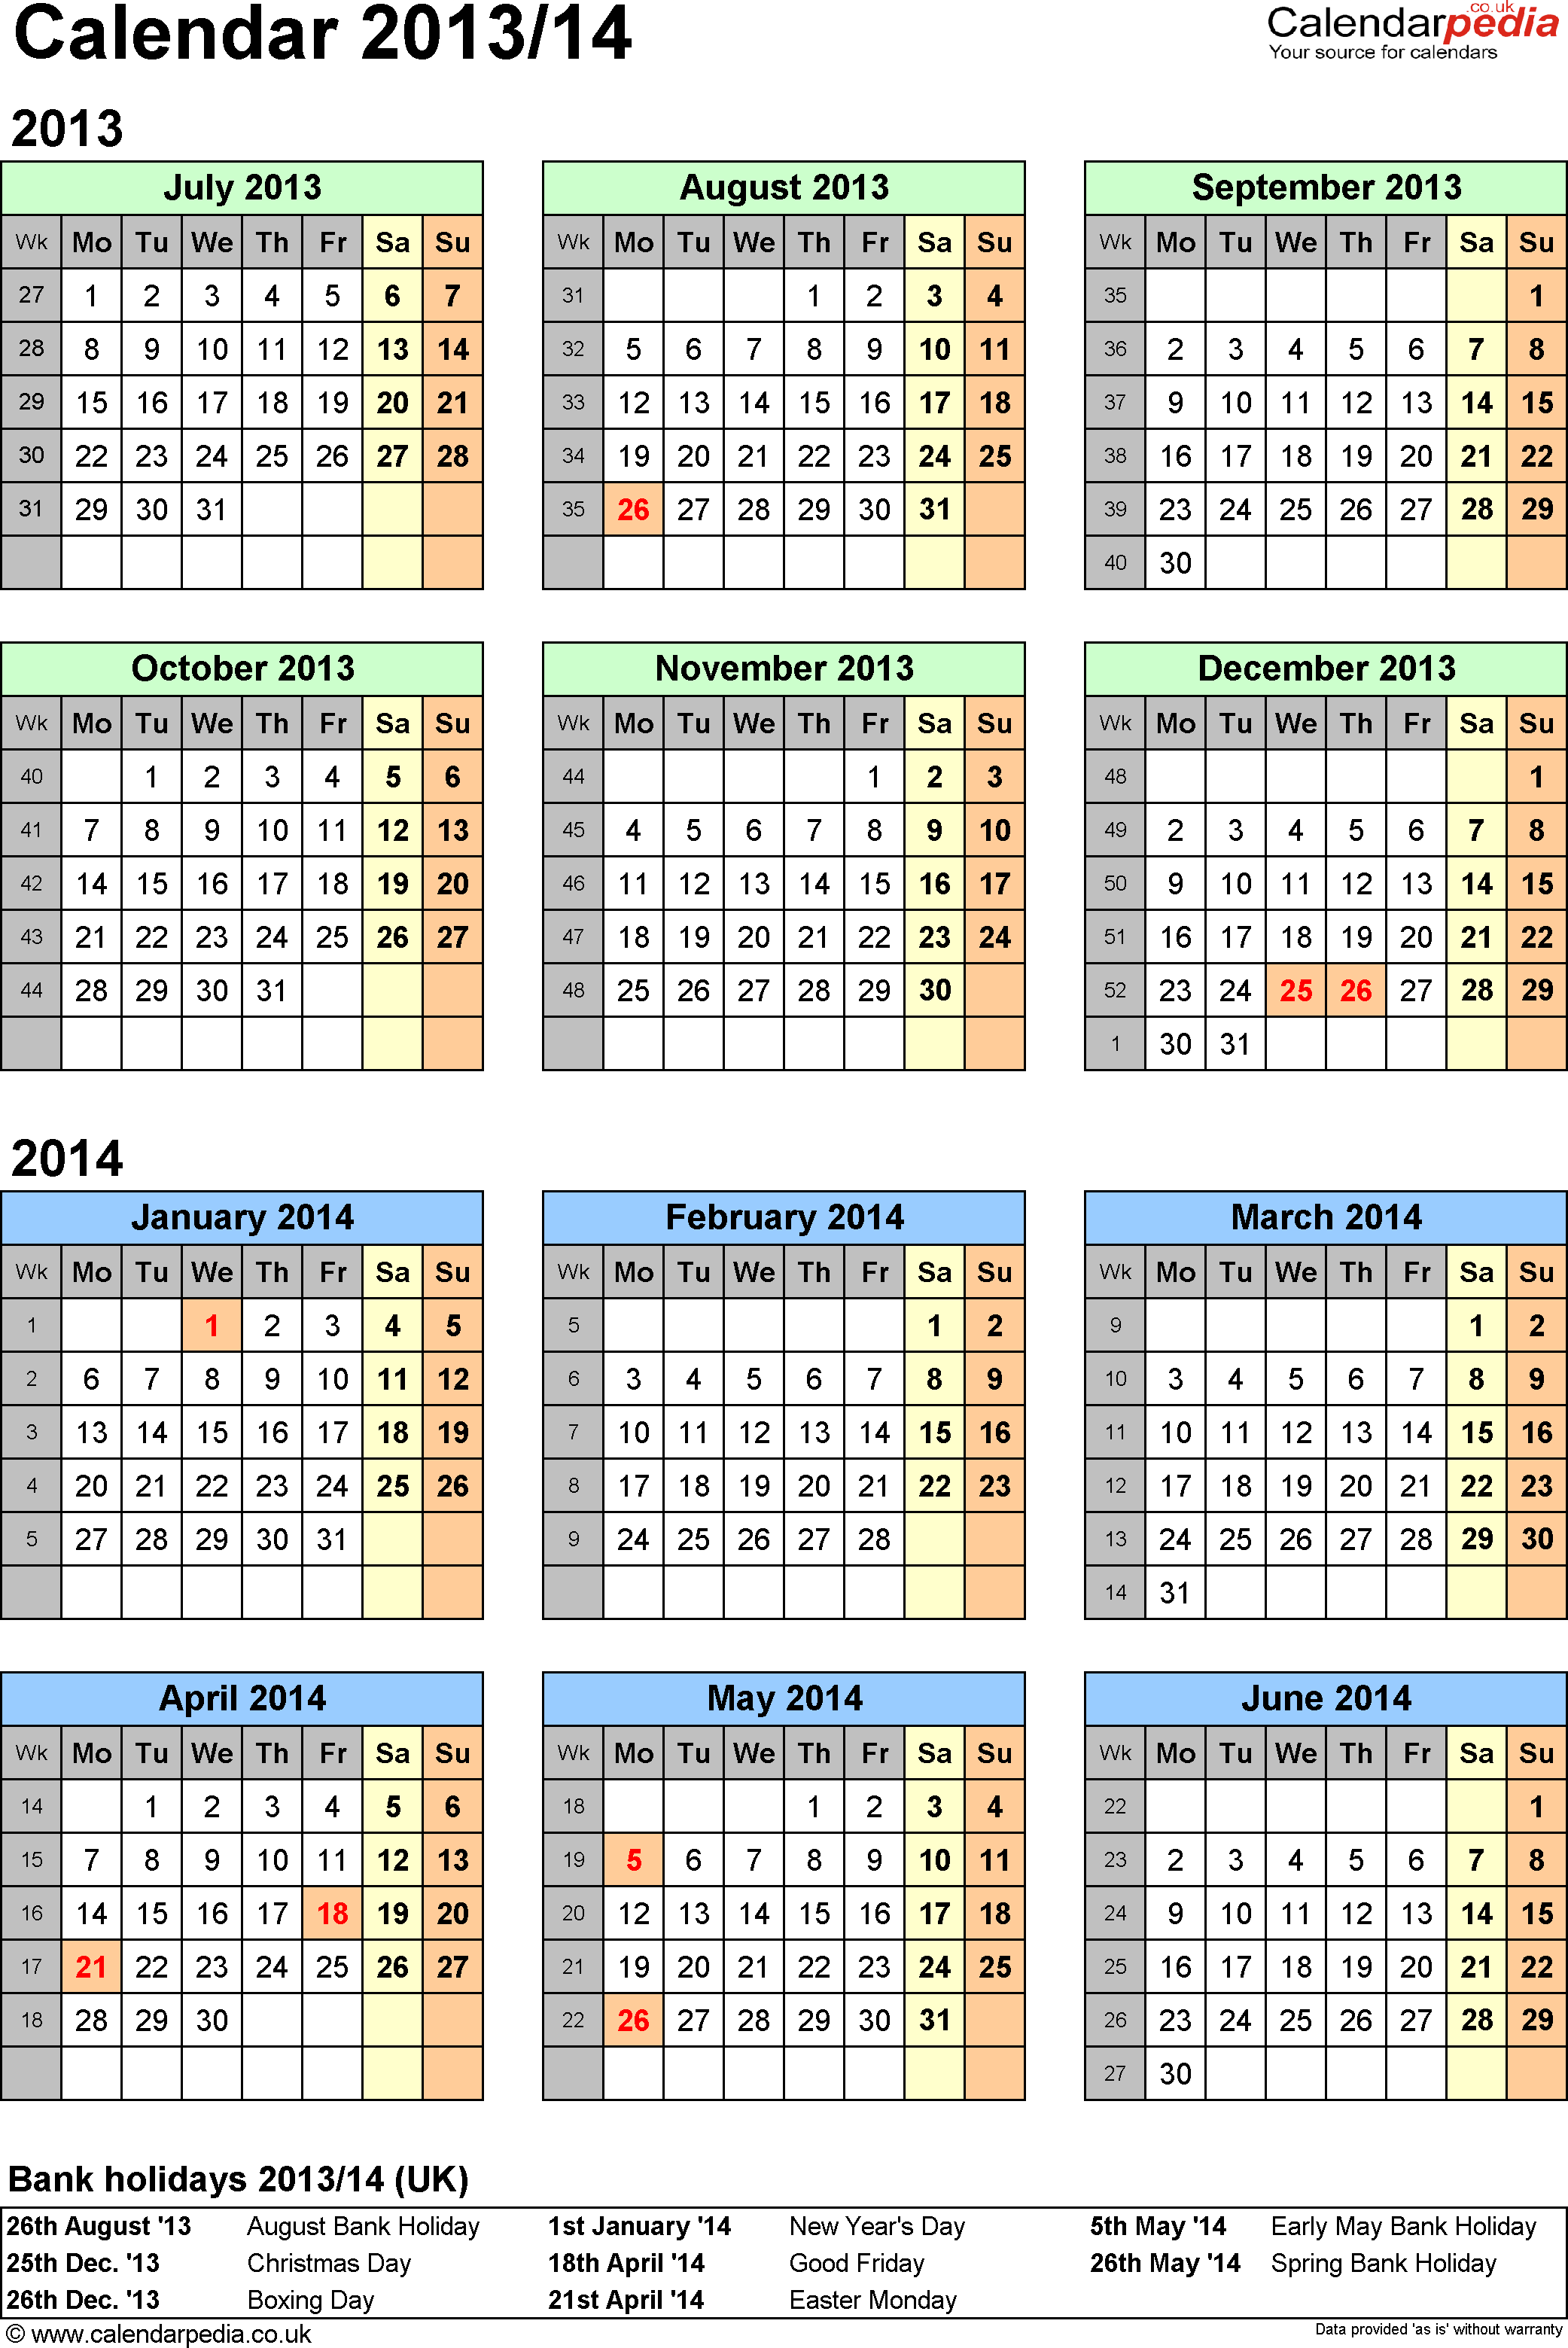 Download Template 2: Excel template for split year calendar 2013/2014 (portrait orientation, 1 page, A4)